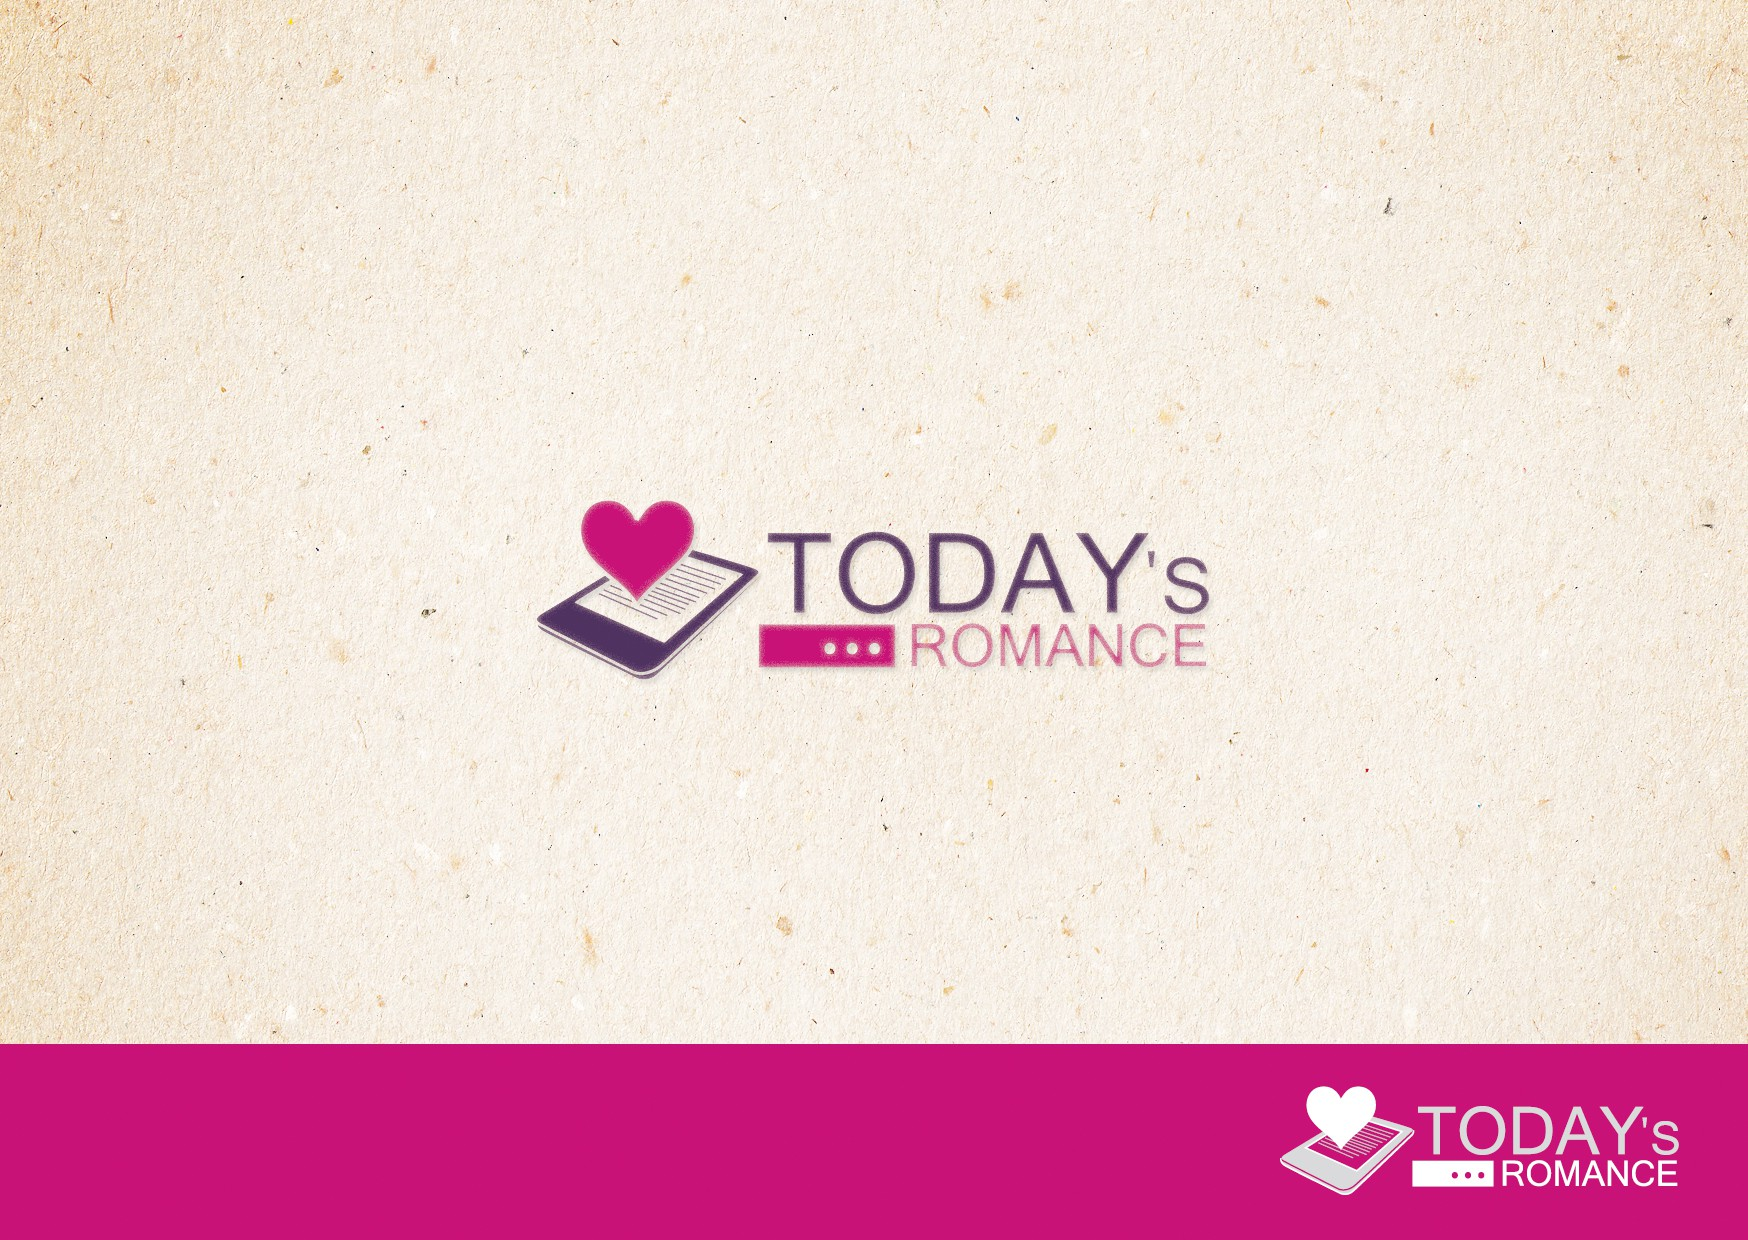 Today's Romance - We need you to create the best logo so that we can attract the best readers!